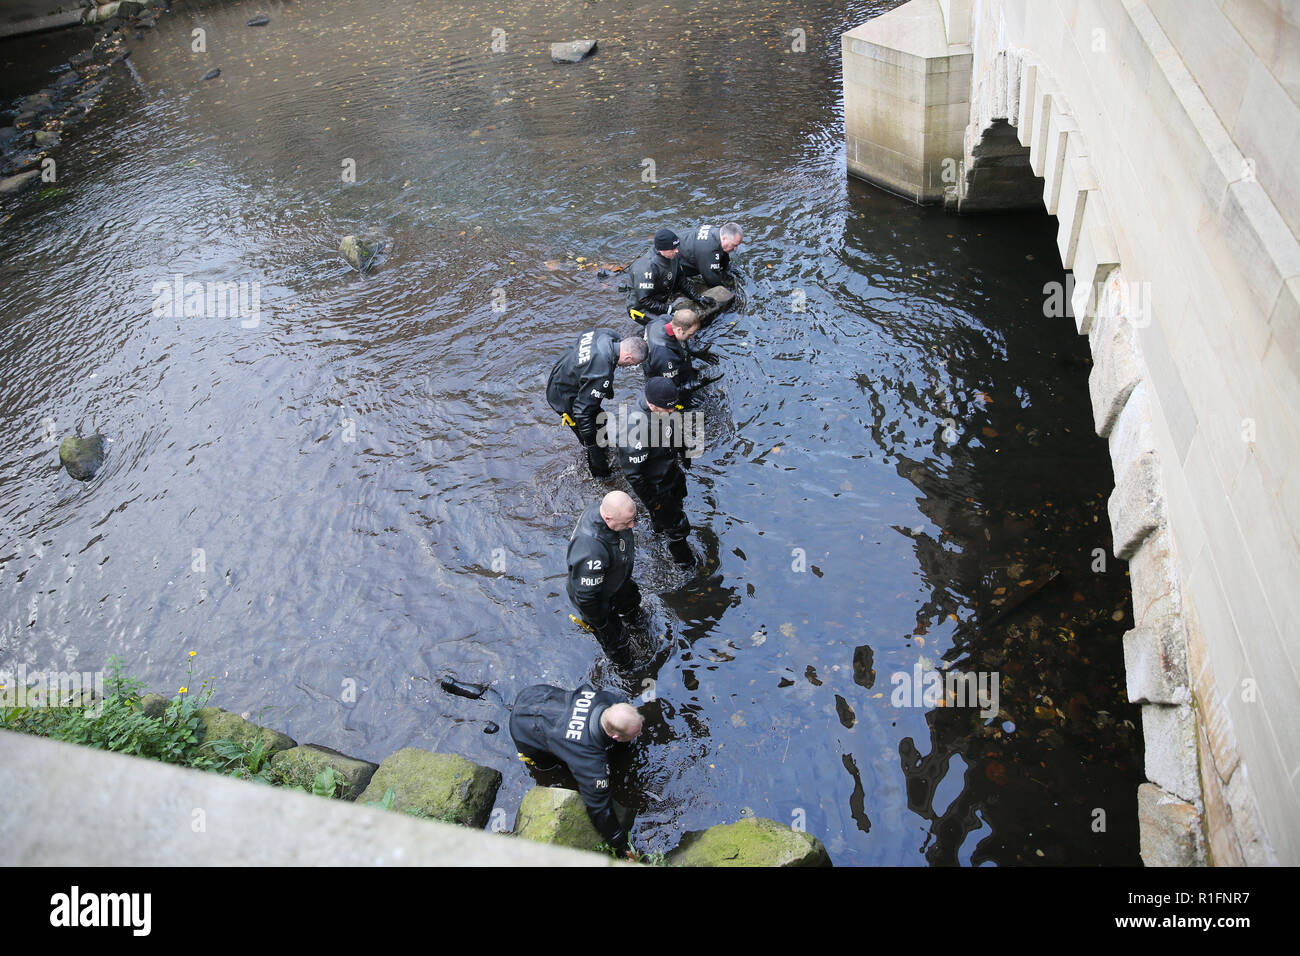 Rochdale, Lancashire, UK. 12th November, 2018. The Northwest Police  Underwater Search and Marine Unit are conducting a search of the River Roche in Rochdale town center.  Currently there is no information been released suggesting what they are searching for.  Rochdale, UK, 12th November 2018 (C)Barbara Cook/Alamy Live News - Stock Image